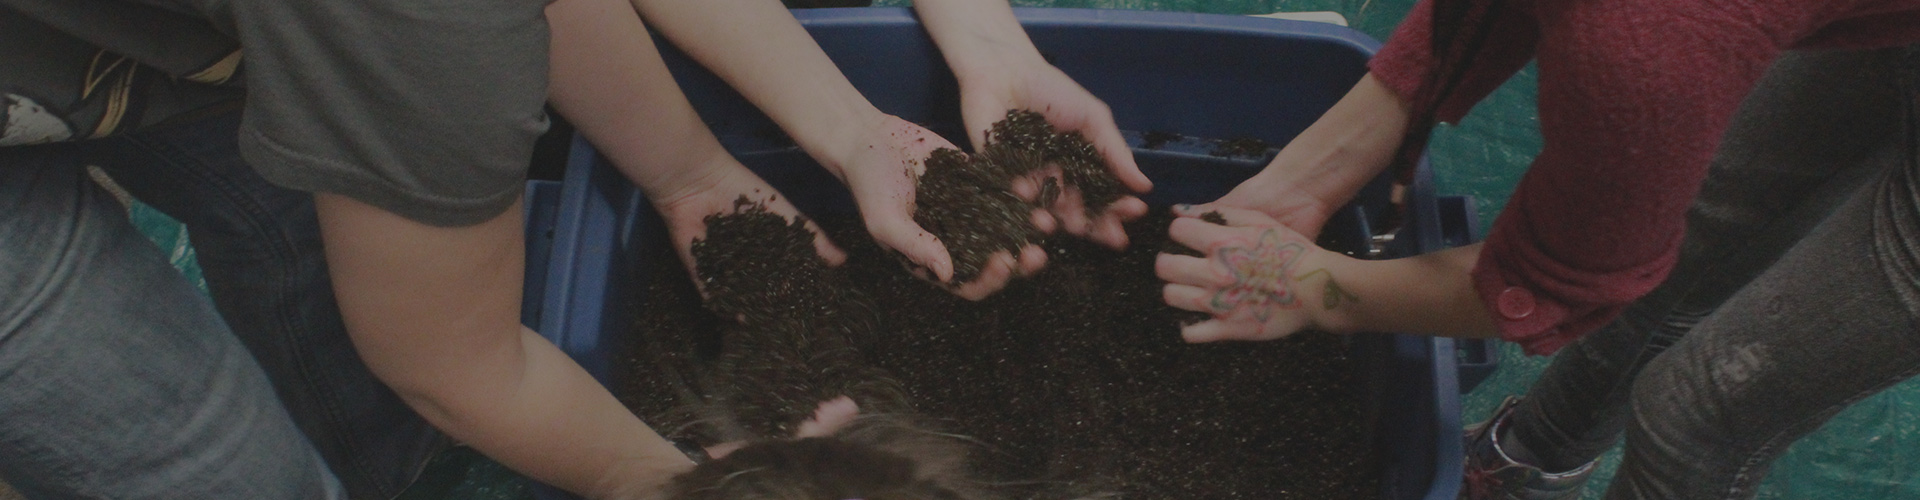 A group of children lean over a tote bin filled with soil. They reach their hands in the bin and grab soil with their hands. A black filter darkens the image.